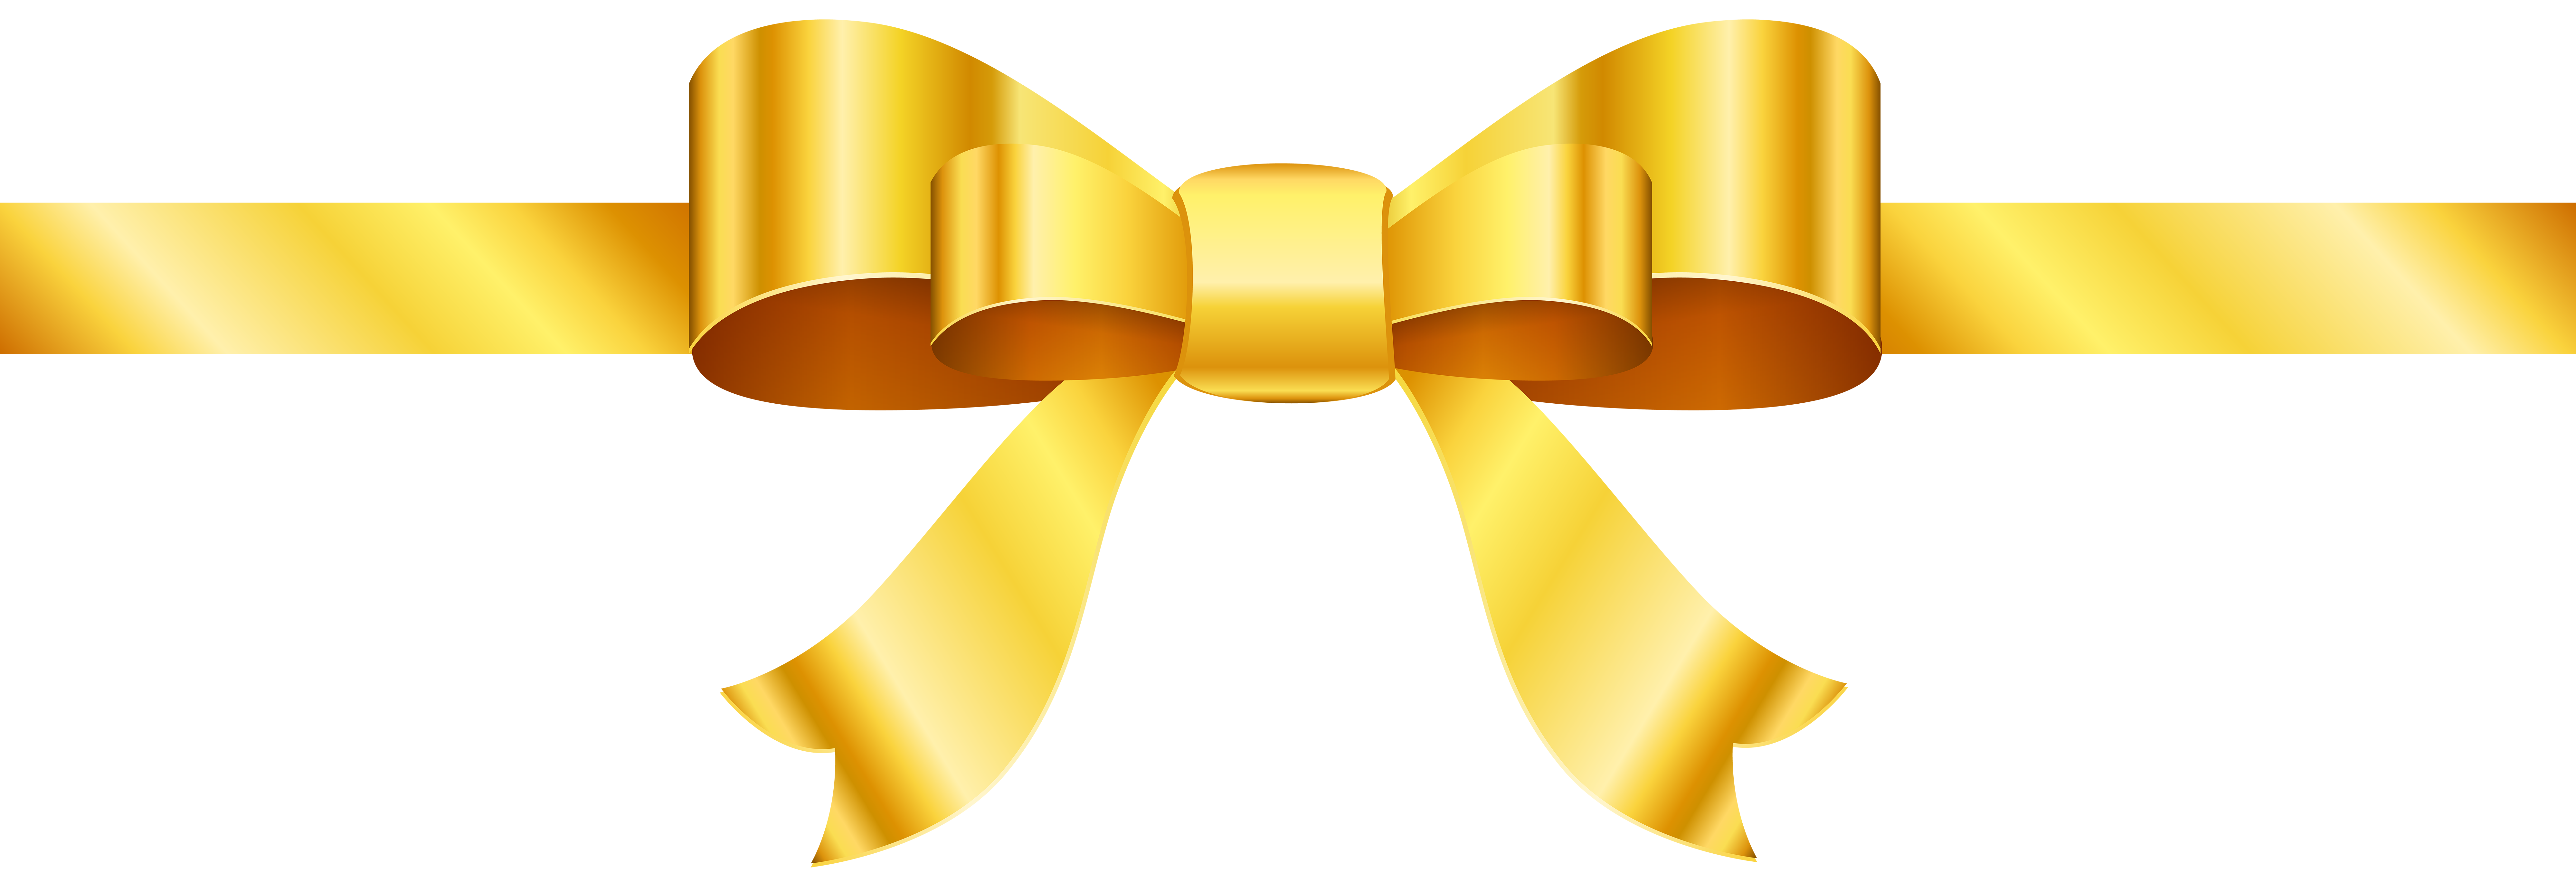 Png clip art image. Clipart bow gold